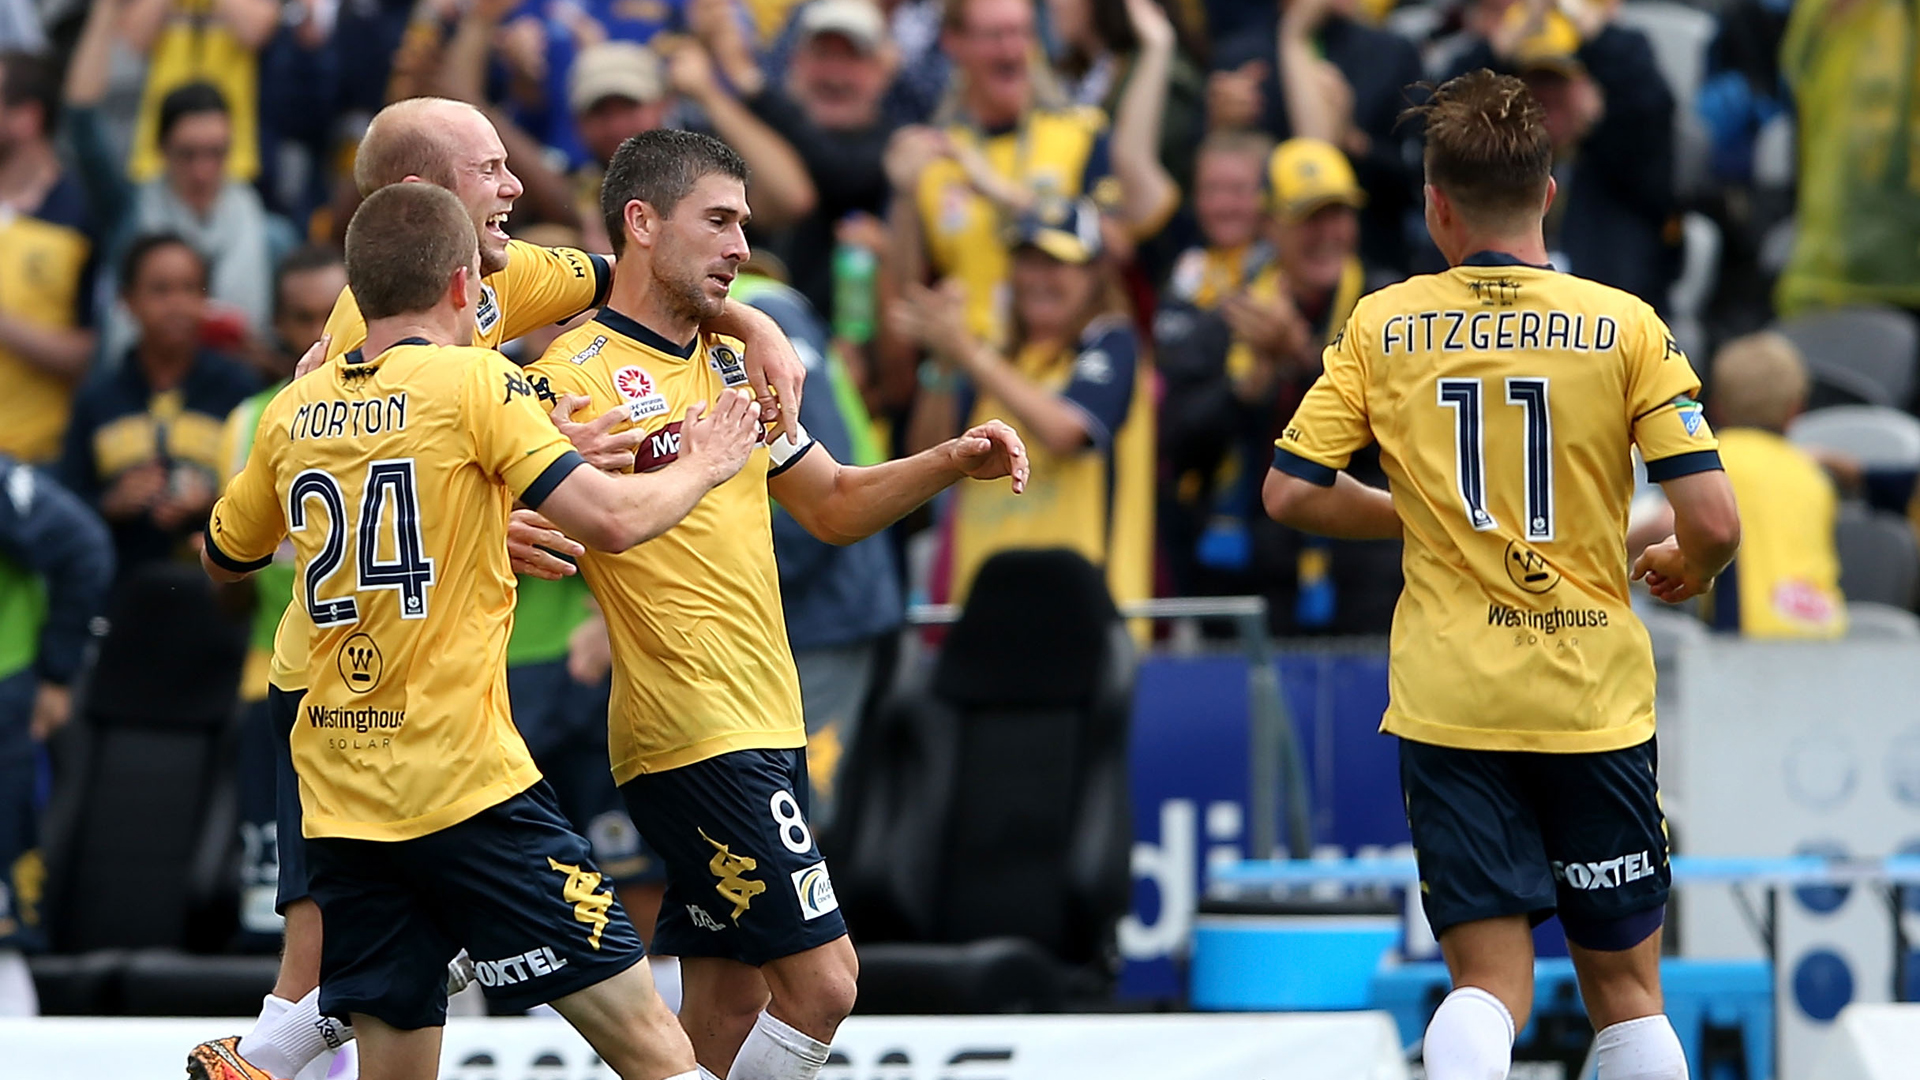 Nick Montgomery Central Coast Mariners A-League 2014-15